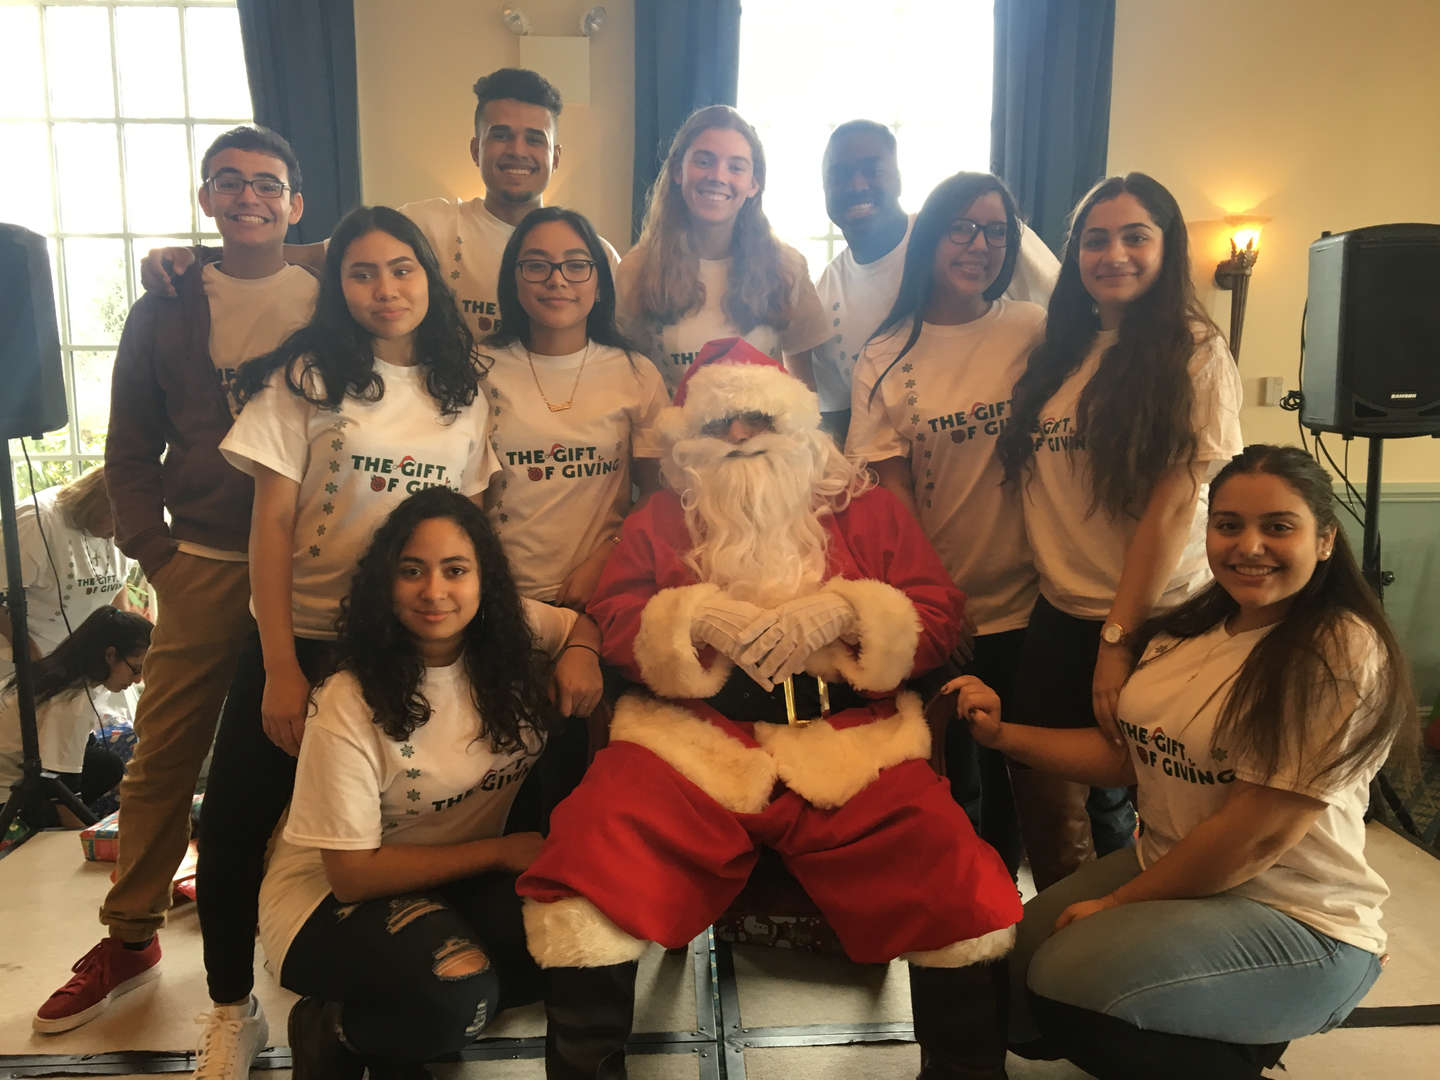 Members of the student government posing with a seated Santa